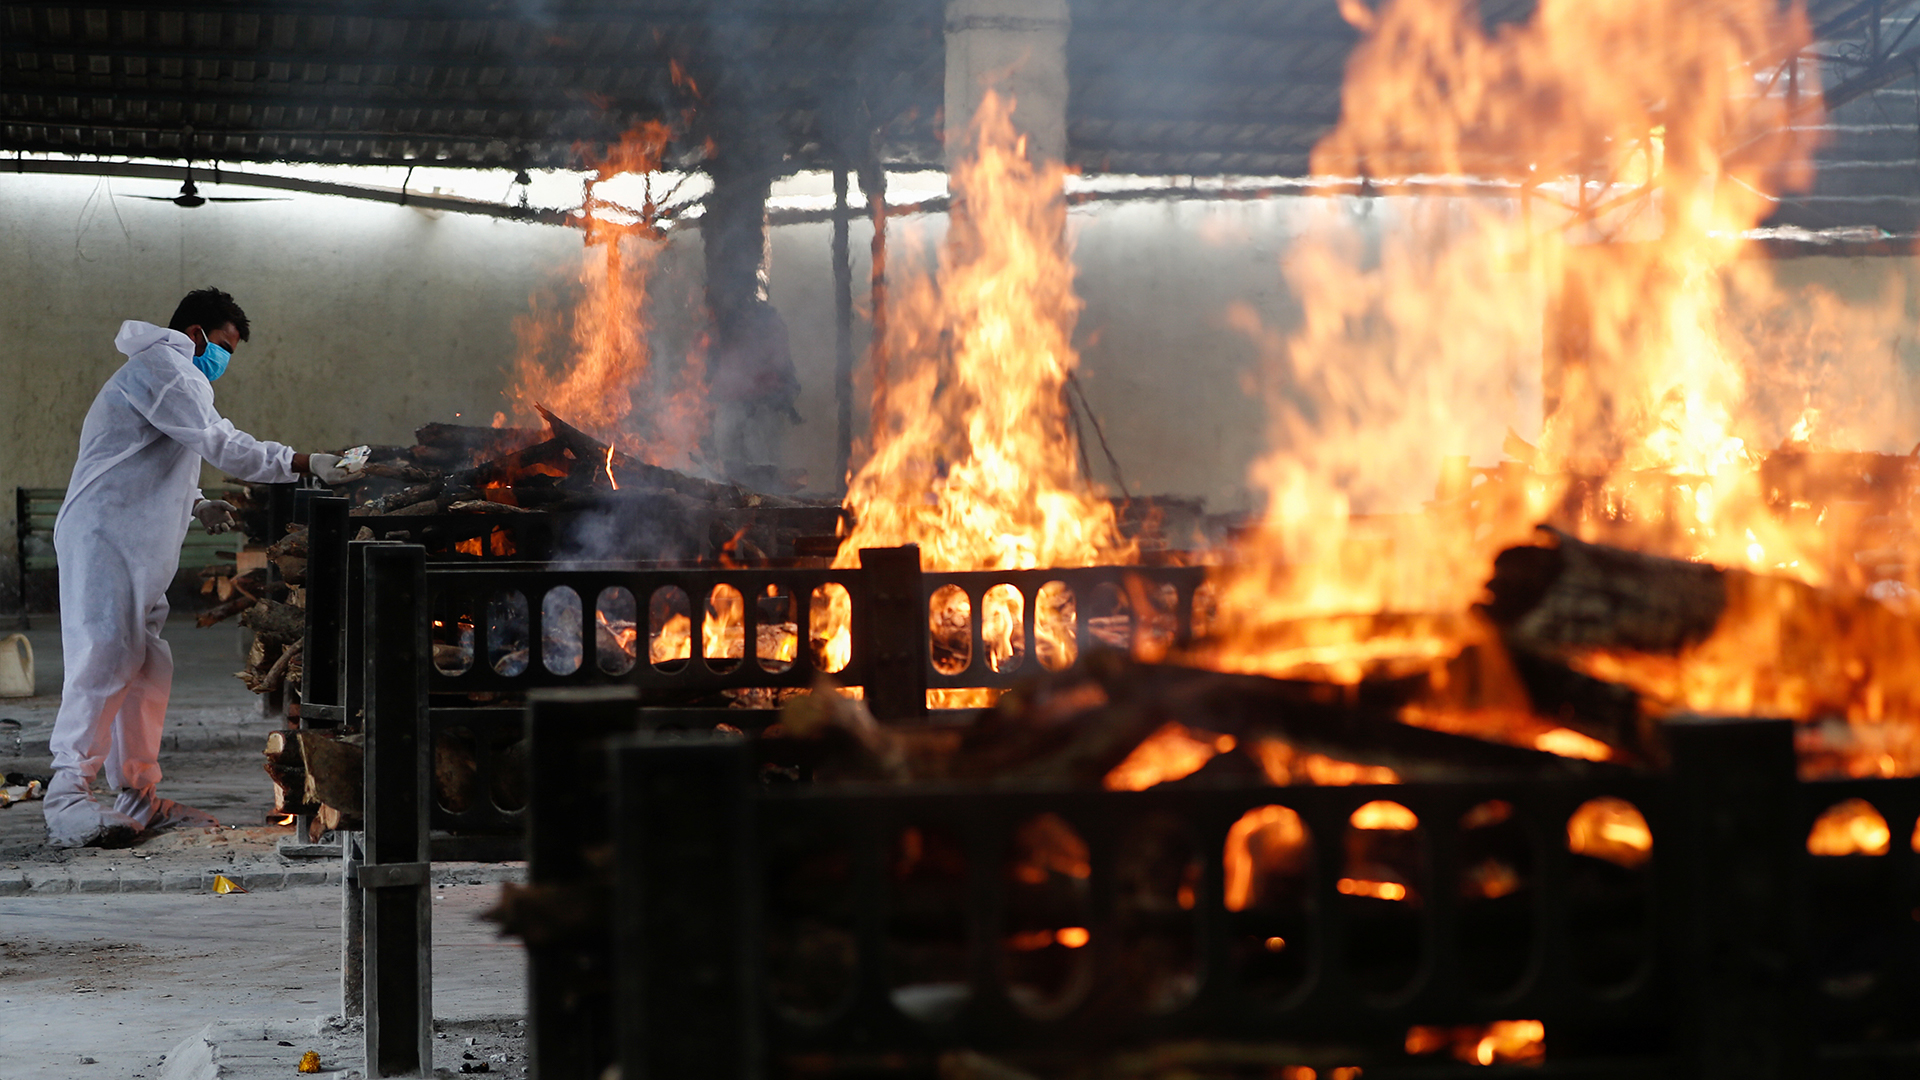 At least 13 killed in Indian hospital fire as country gripped by new  coronavirus variant   South China Morning Post